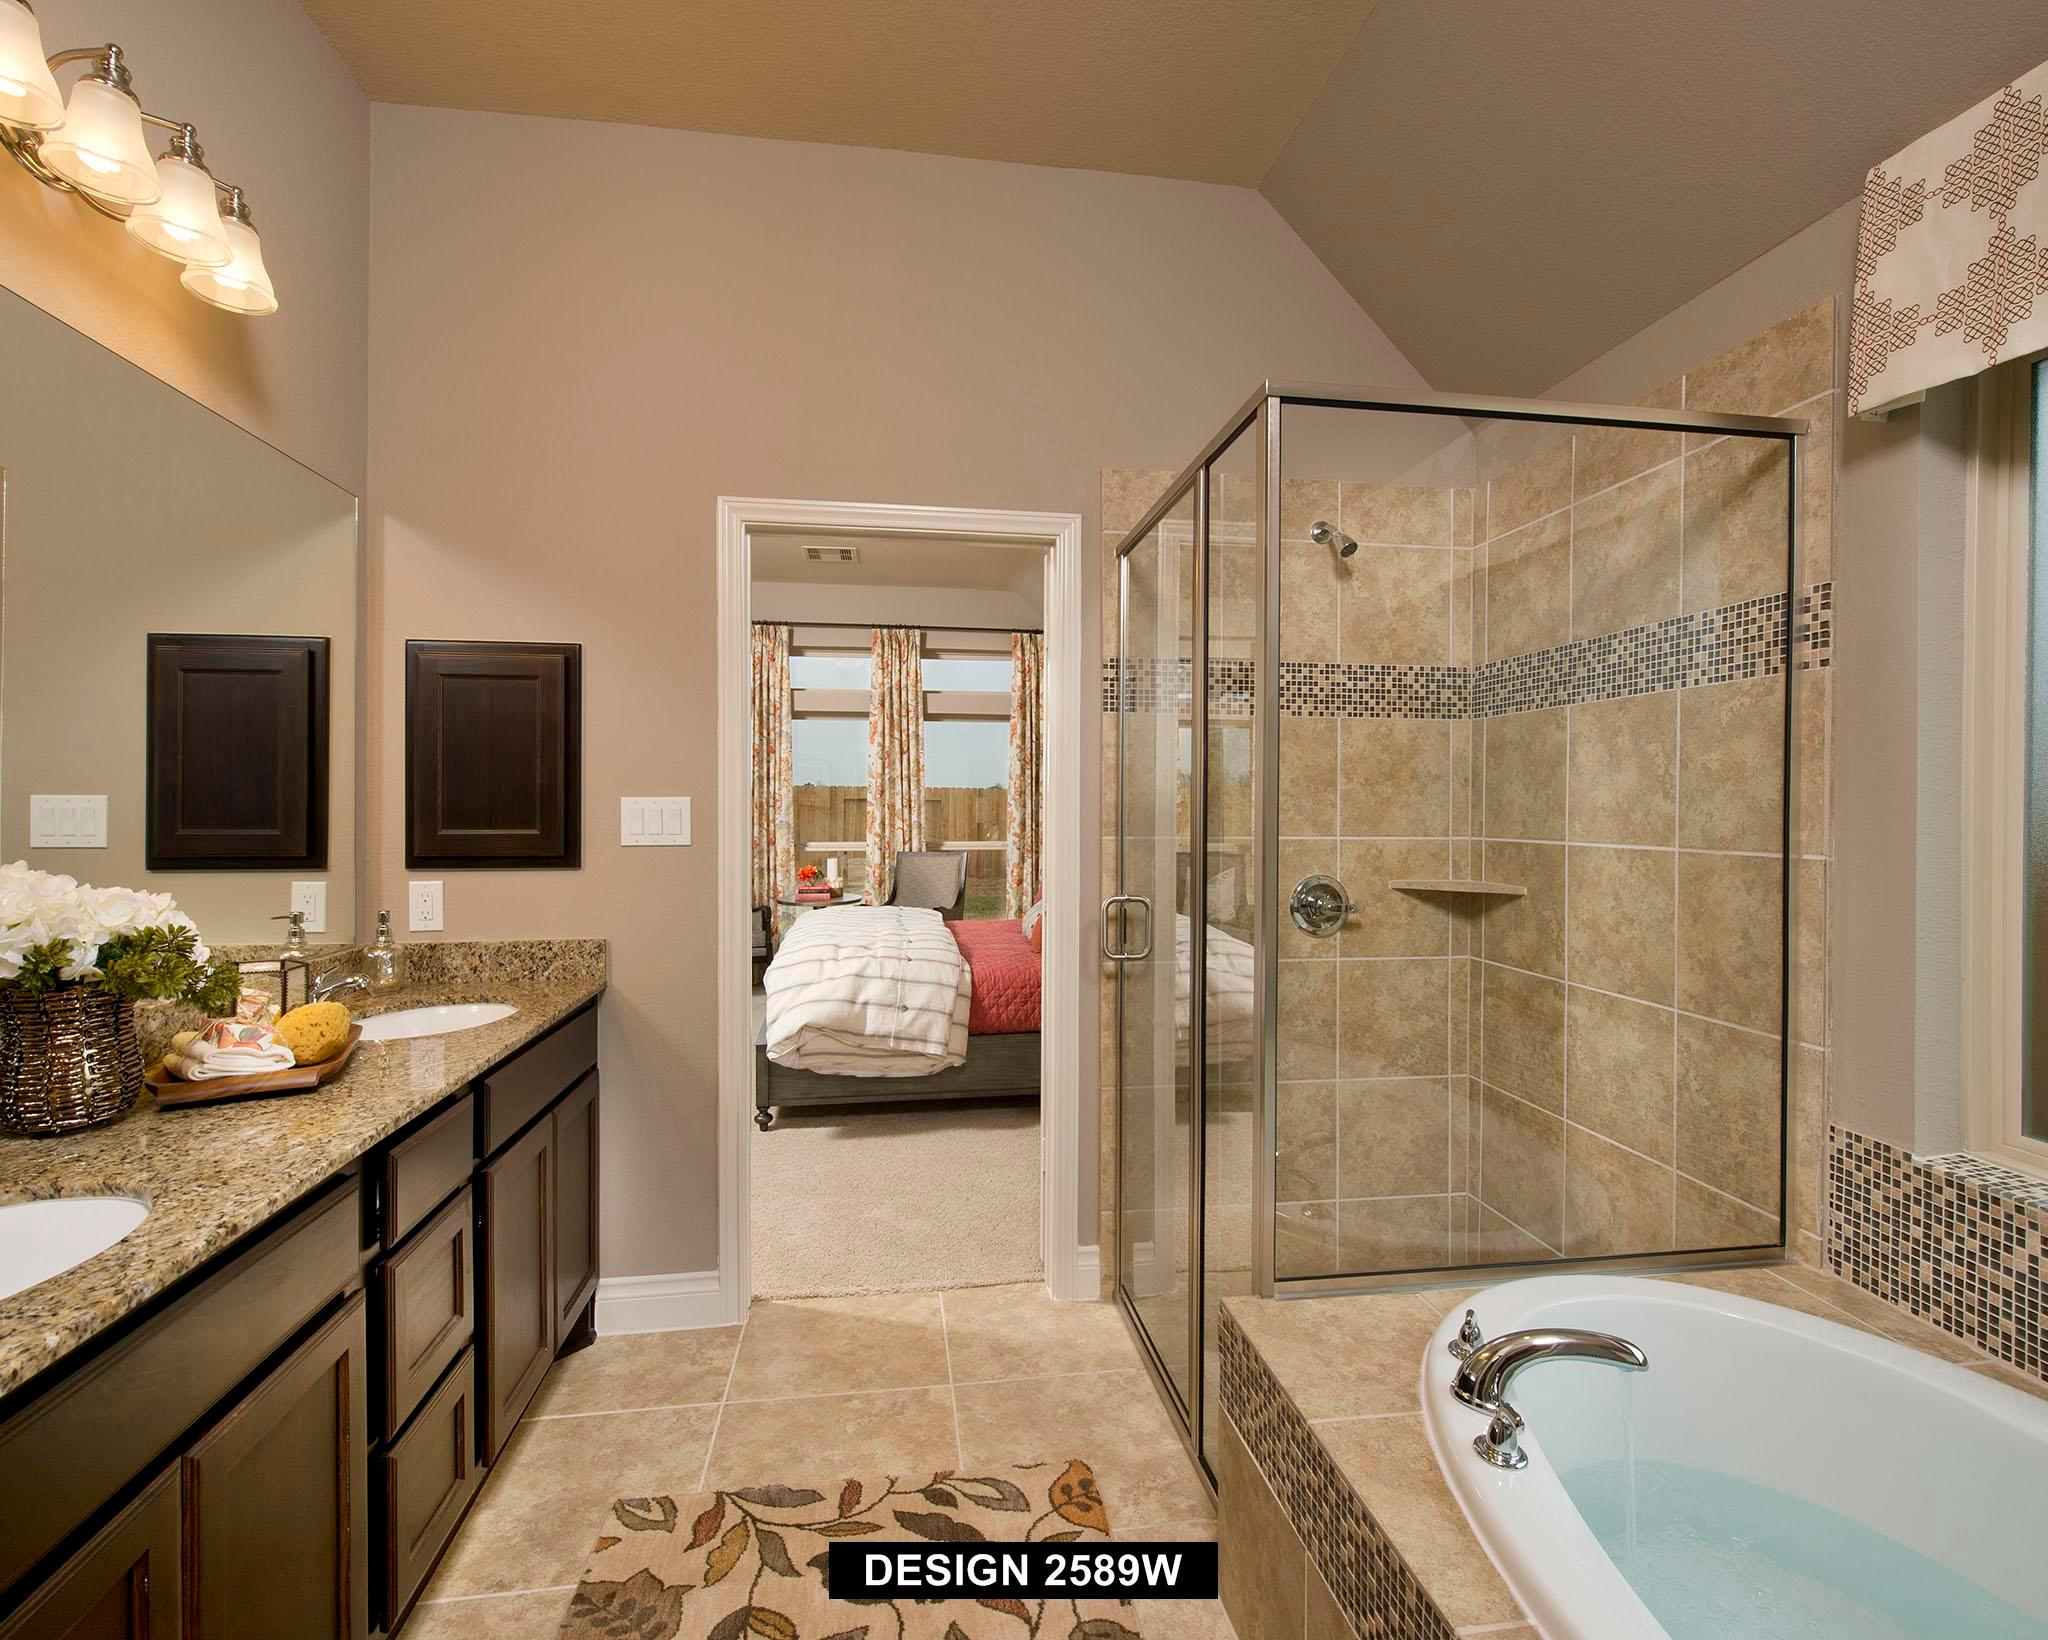 Bathroom featured in the 2589W By Perry Homes in San Antonio, TX